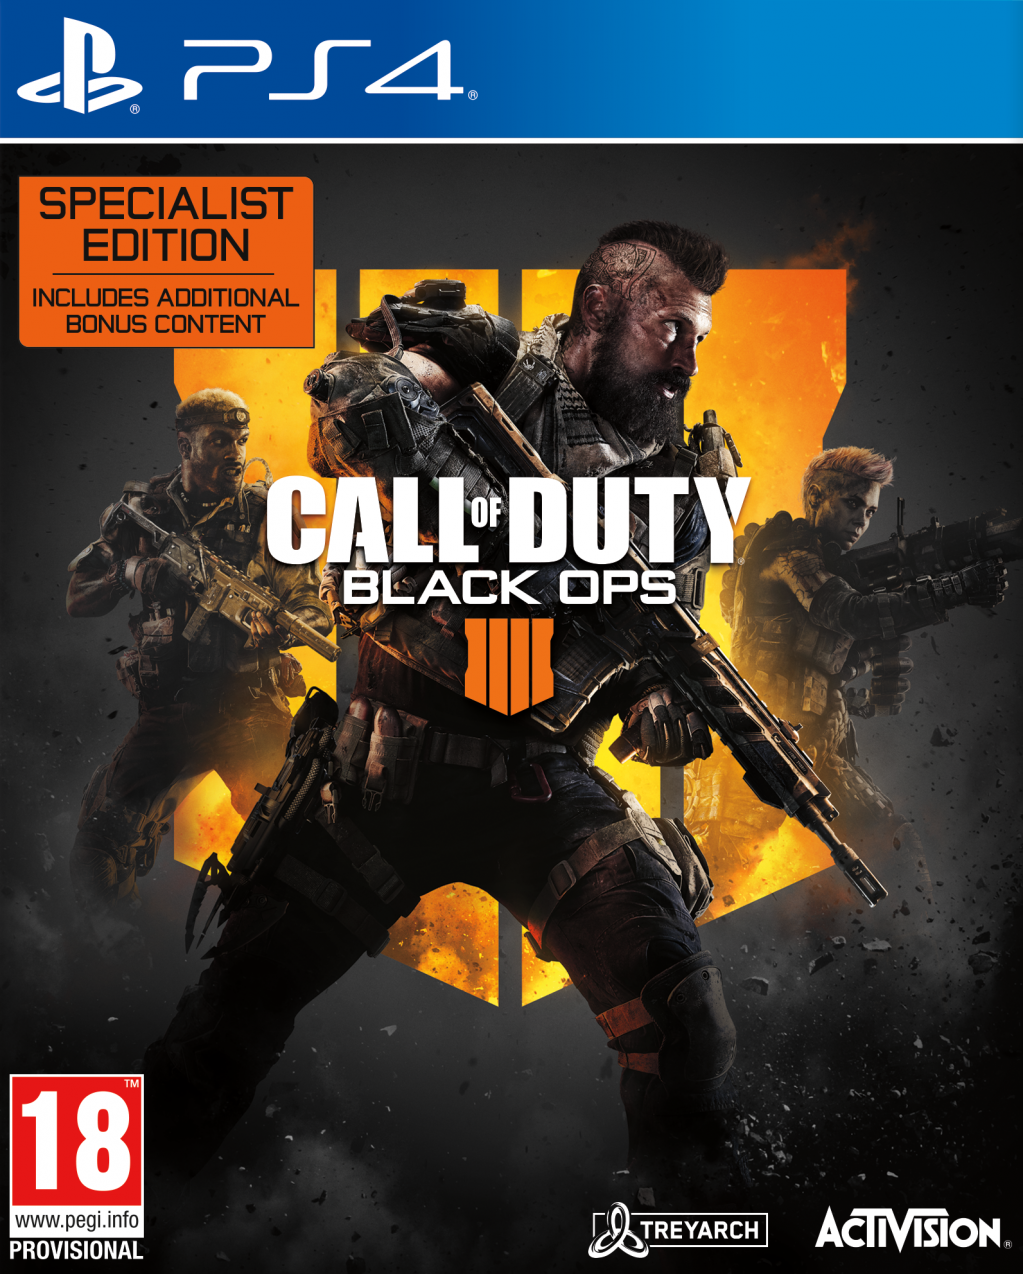 Call Of Duty Black OPS 4 Specialist Edition